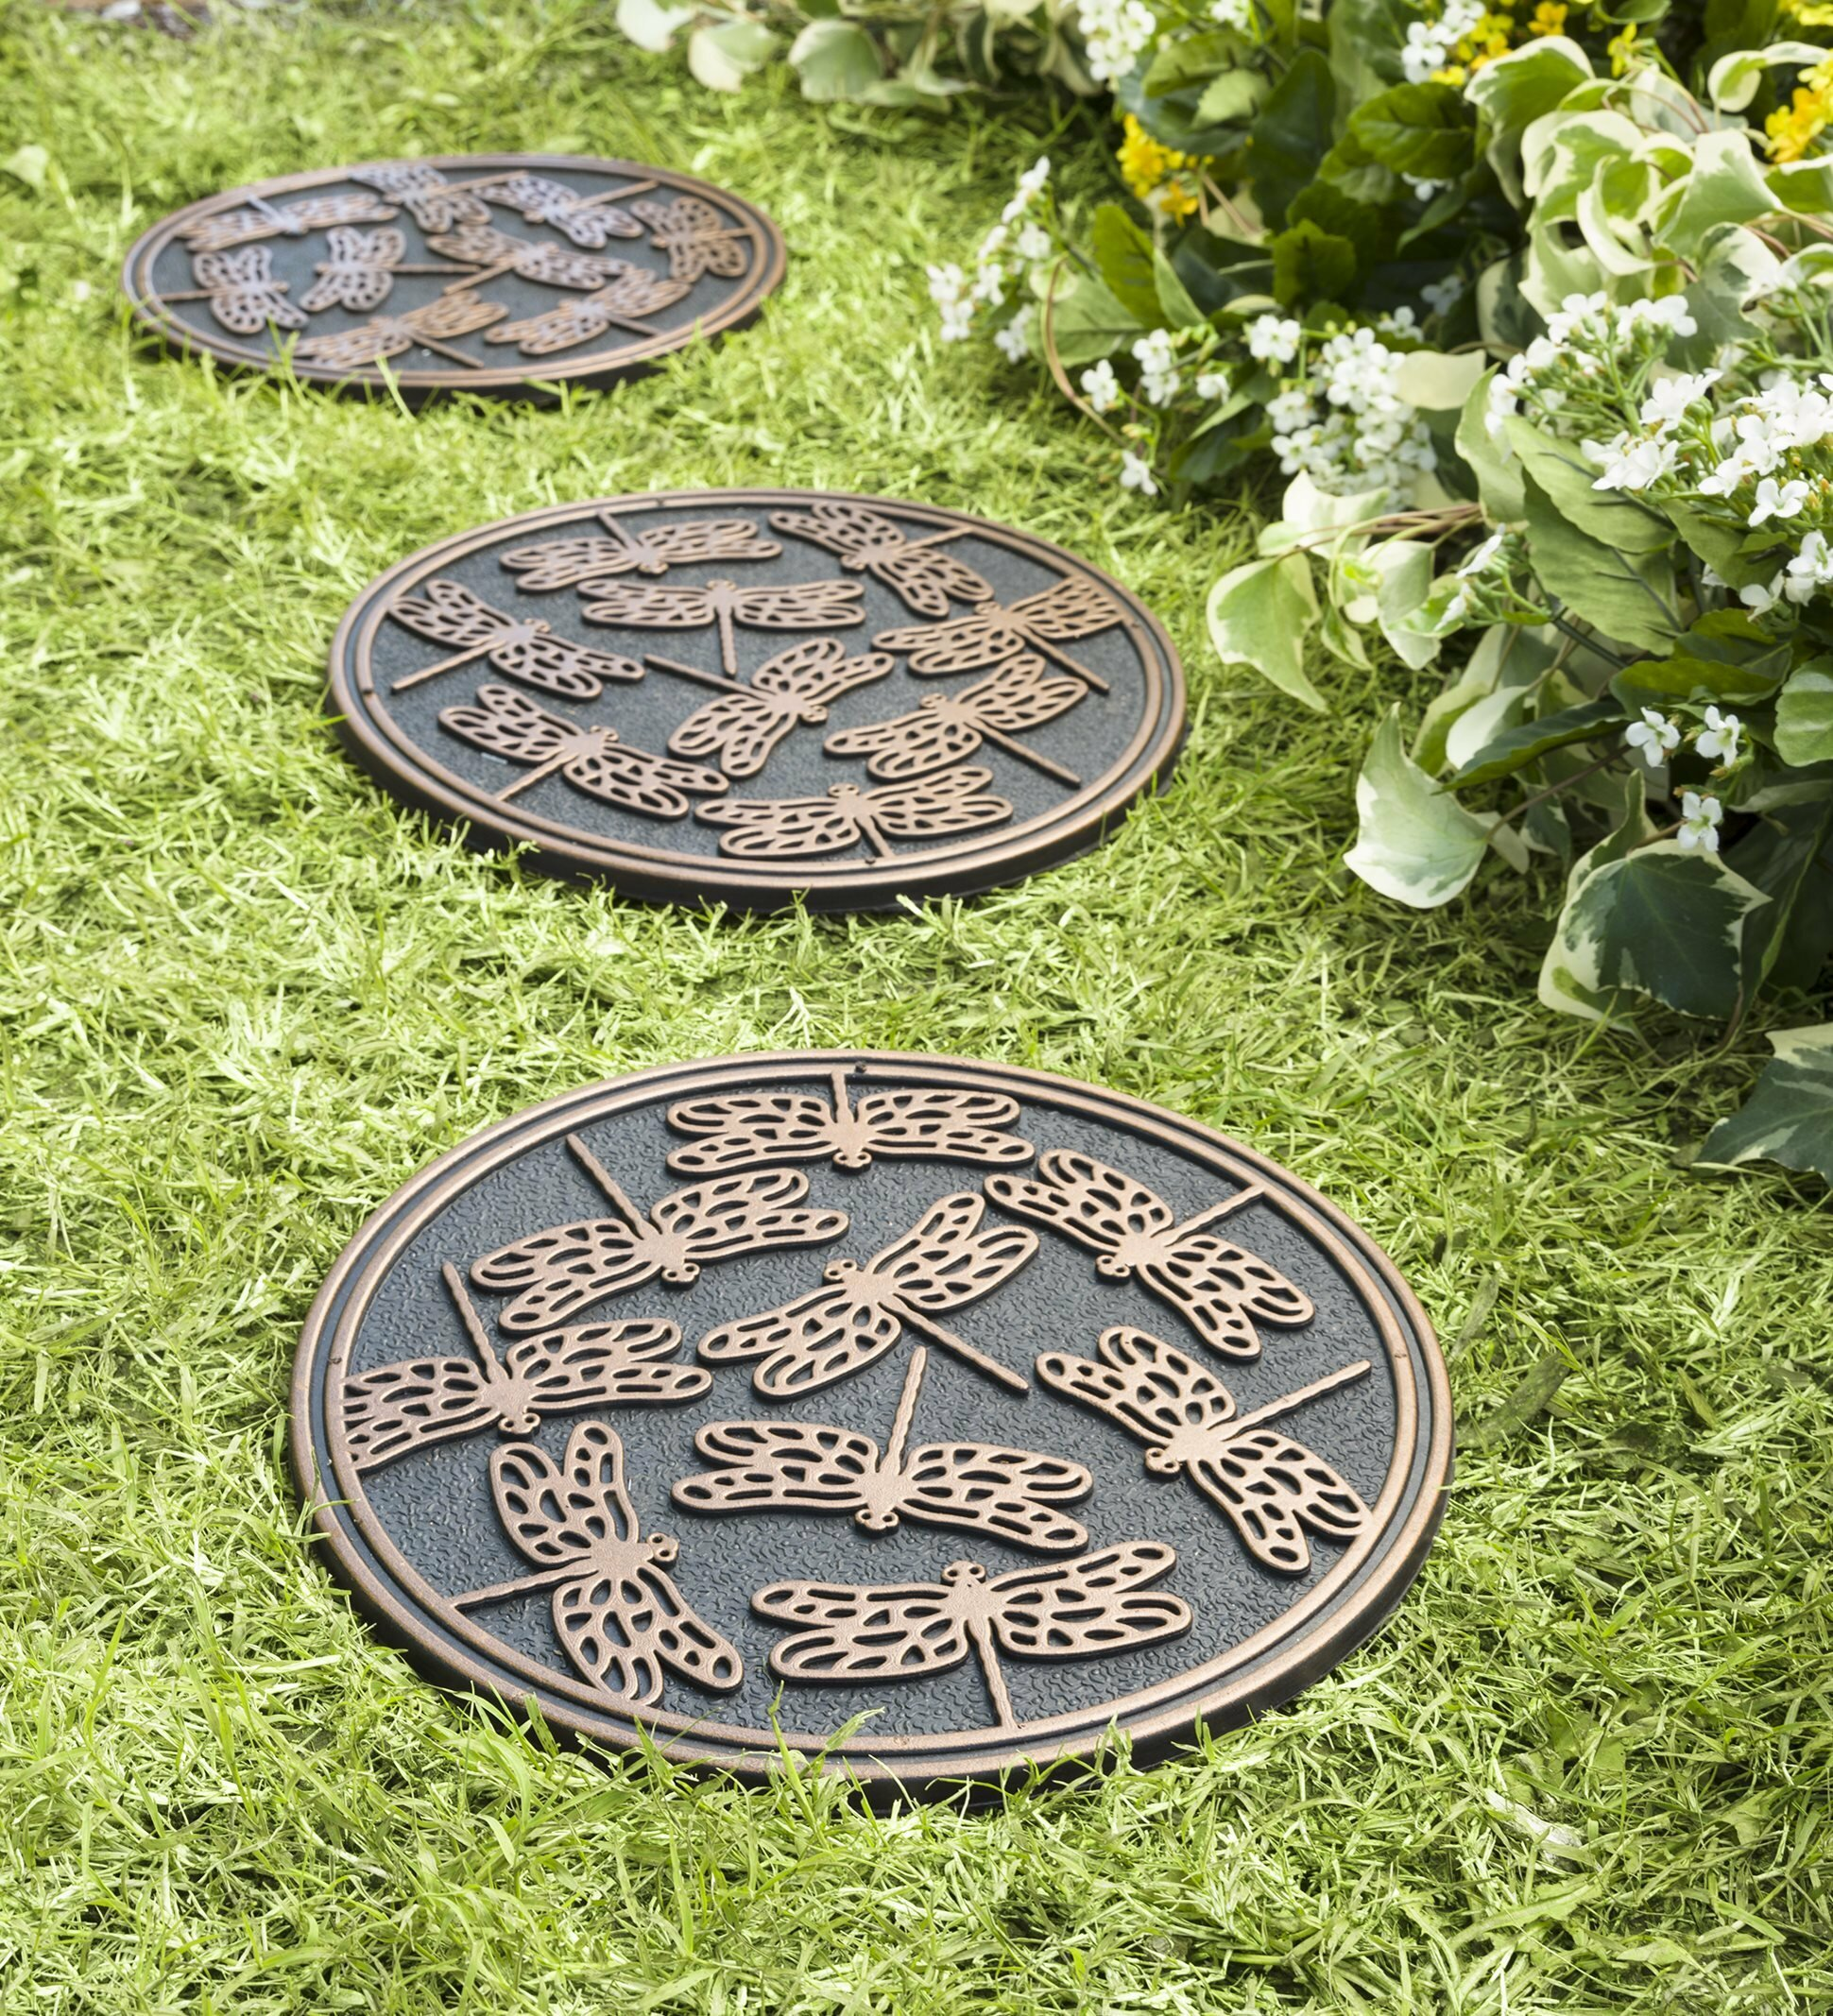 decor garden coryc northern agricultural rocks lowes me supplies stepping stones decorative stone collection for